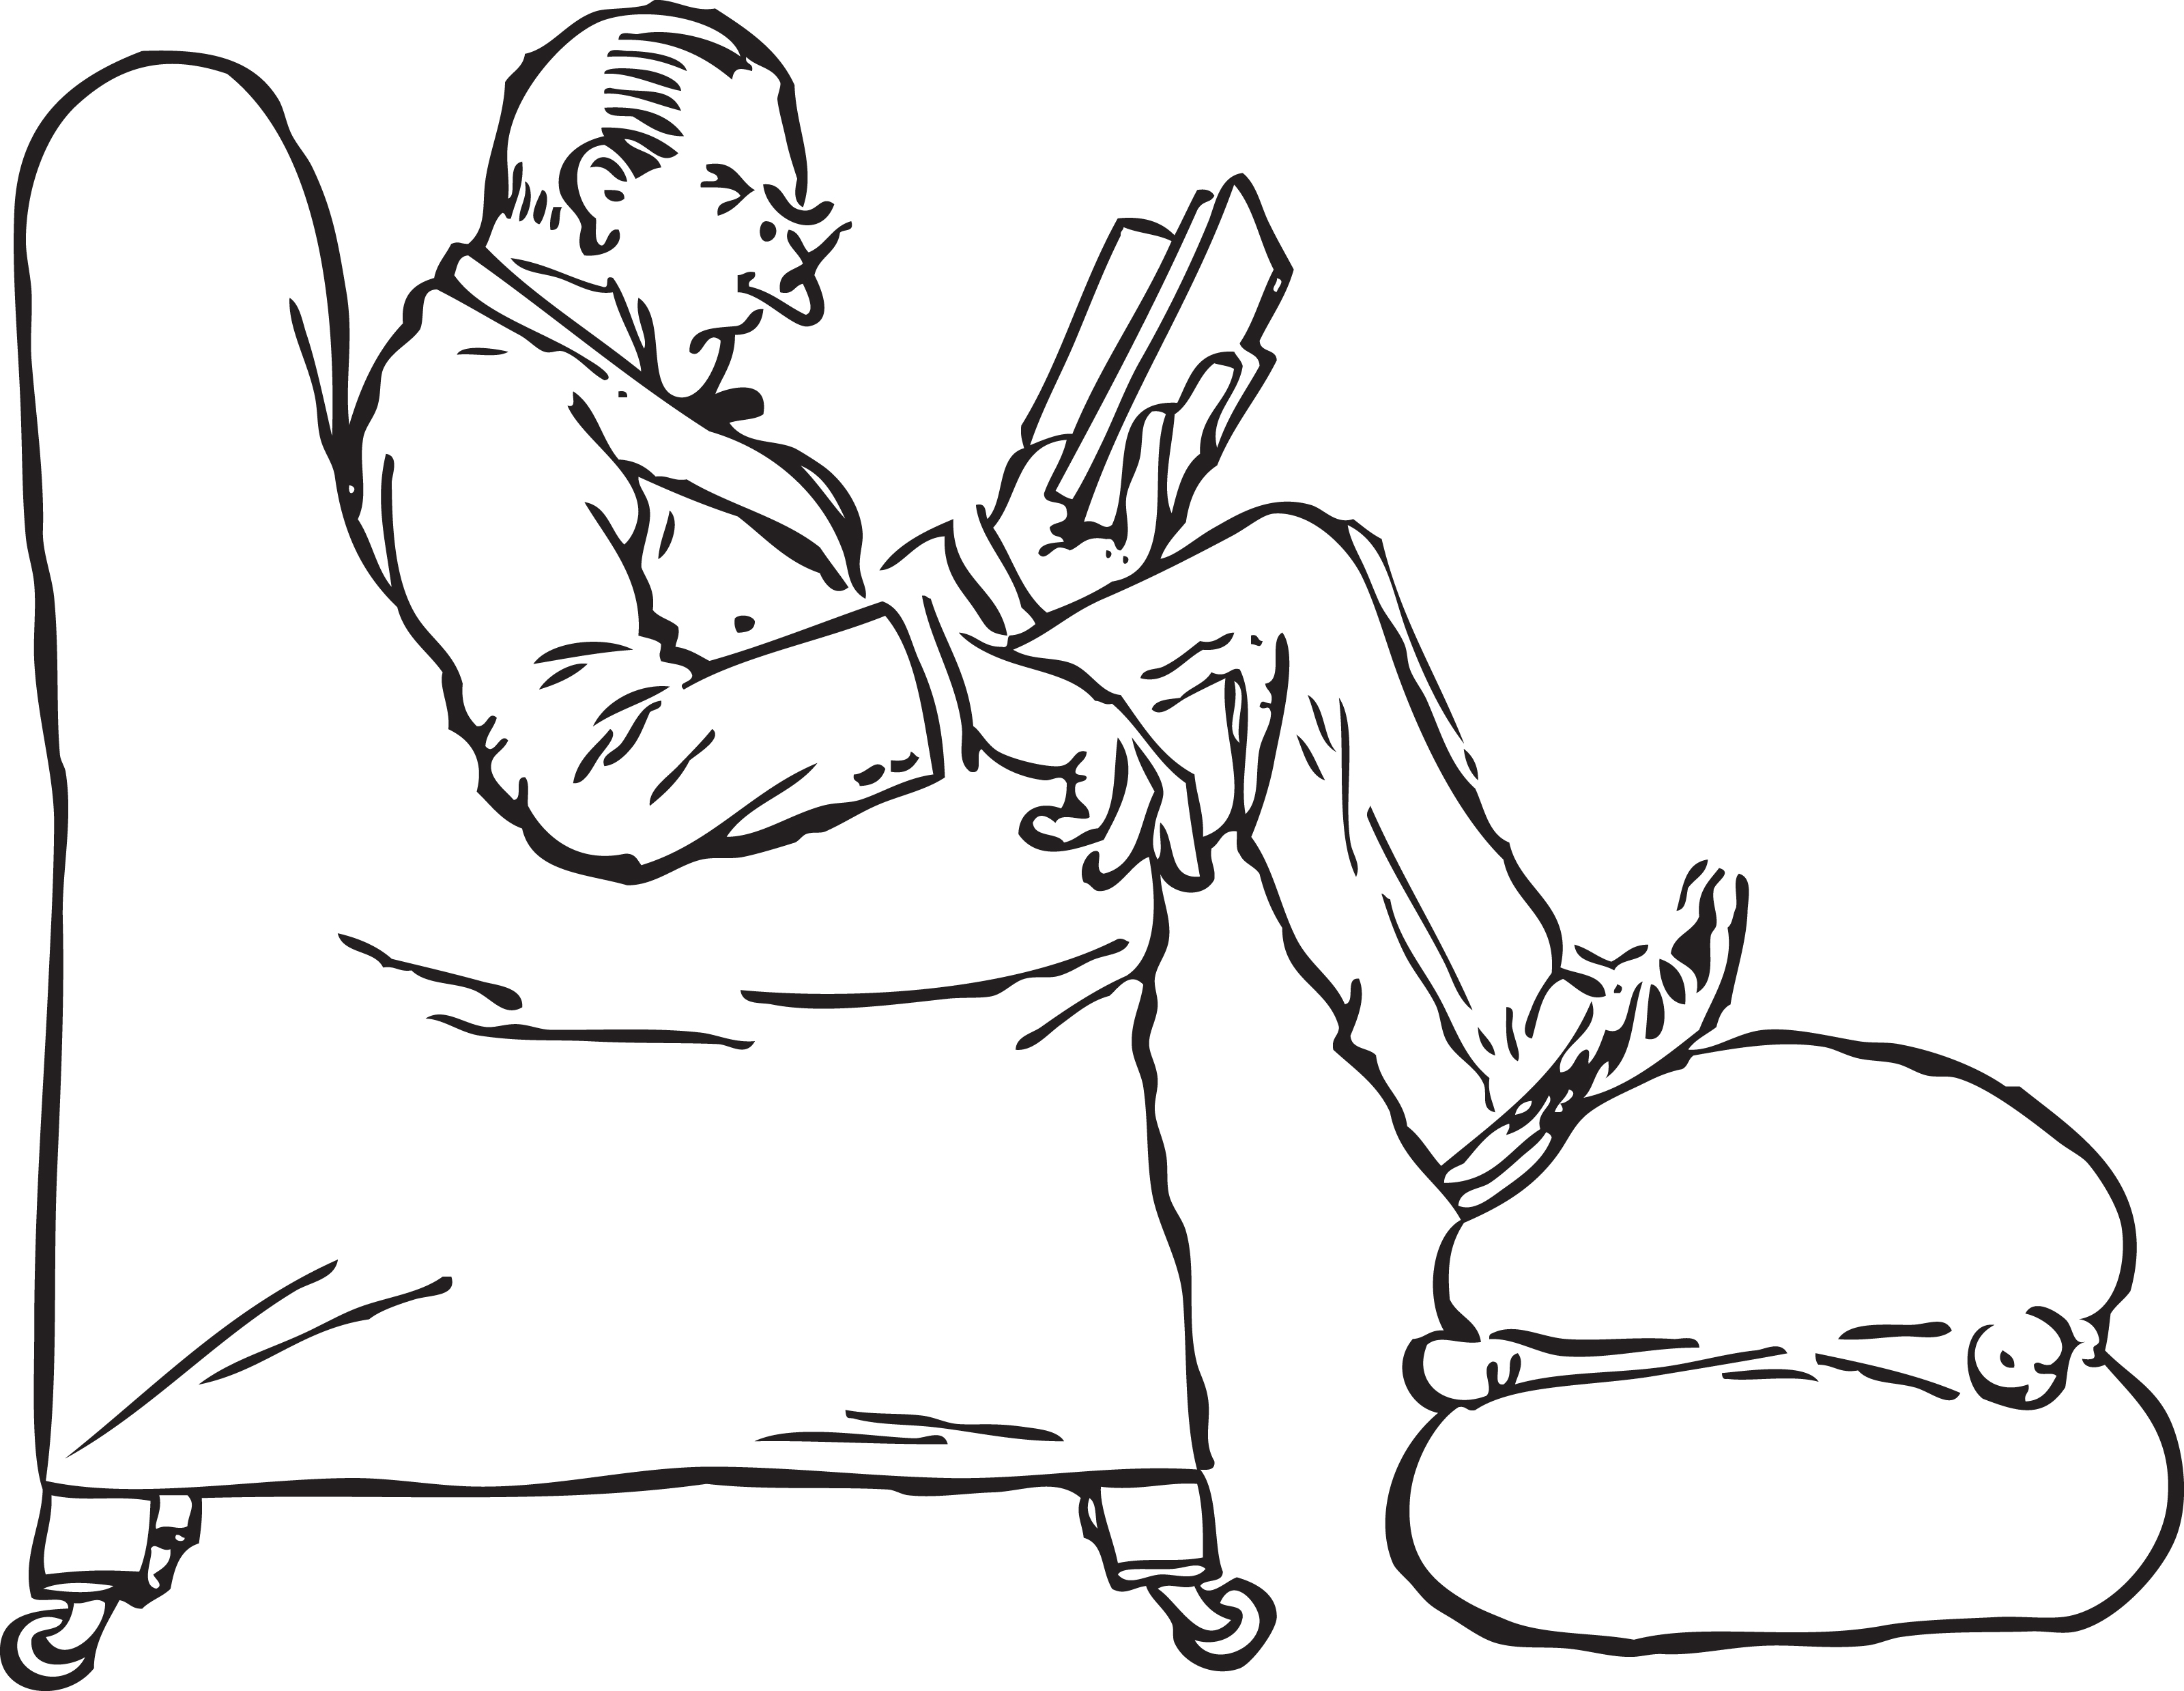 Man sitting in chair drawing - Free Retro Clipart Illustration Of Man Reading Book While Sitting In Chair